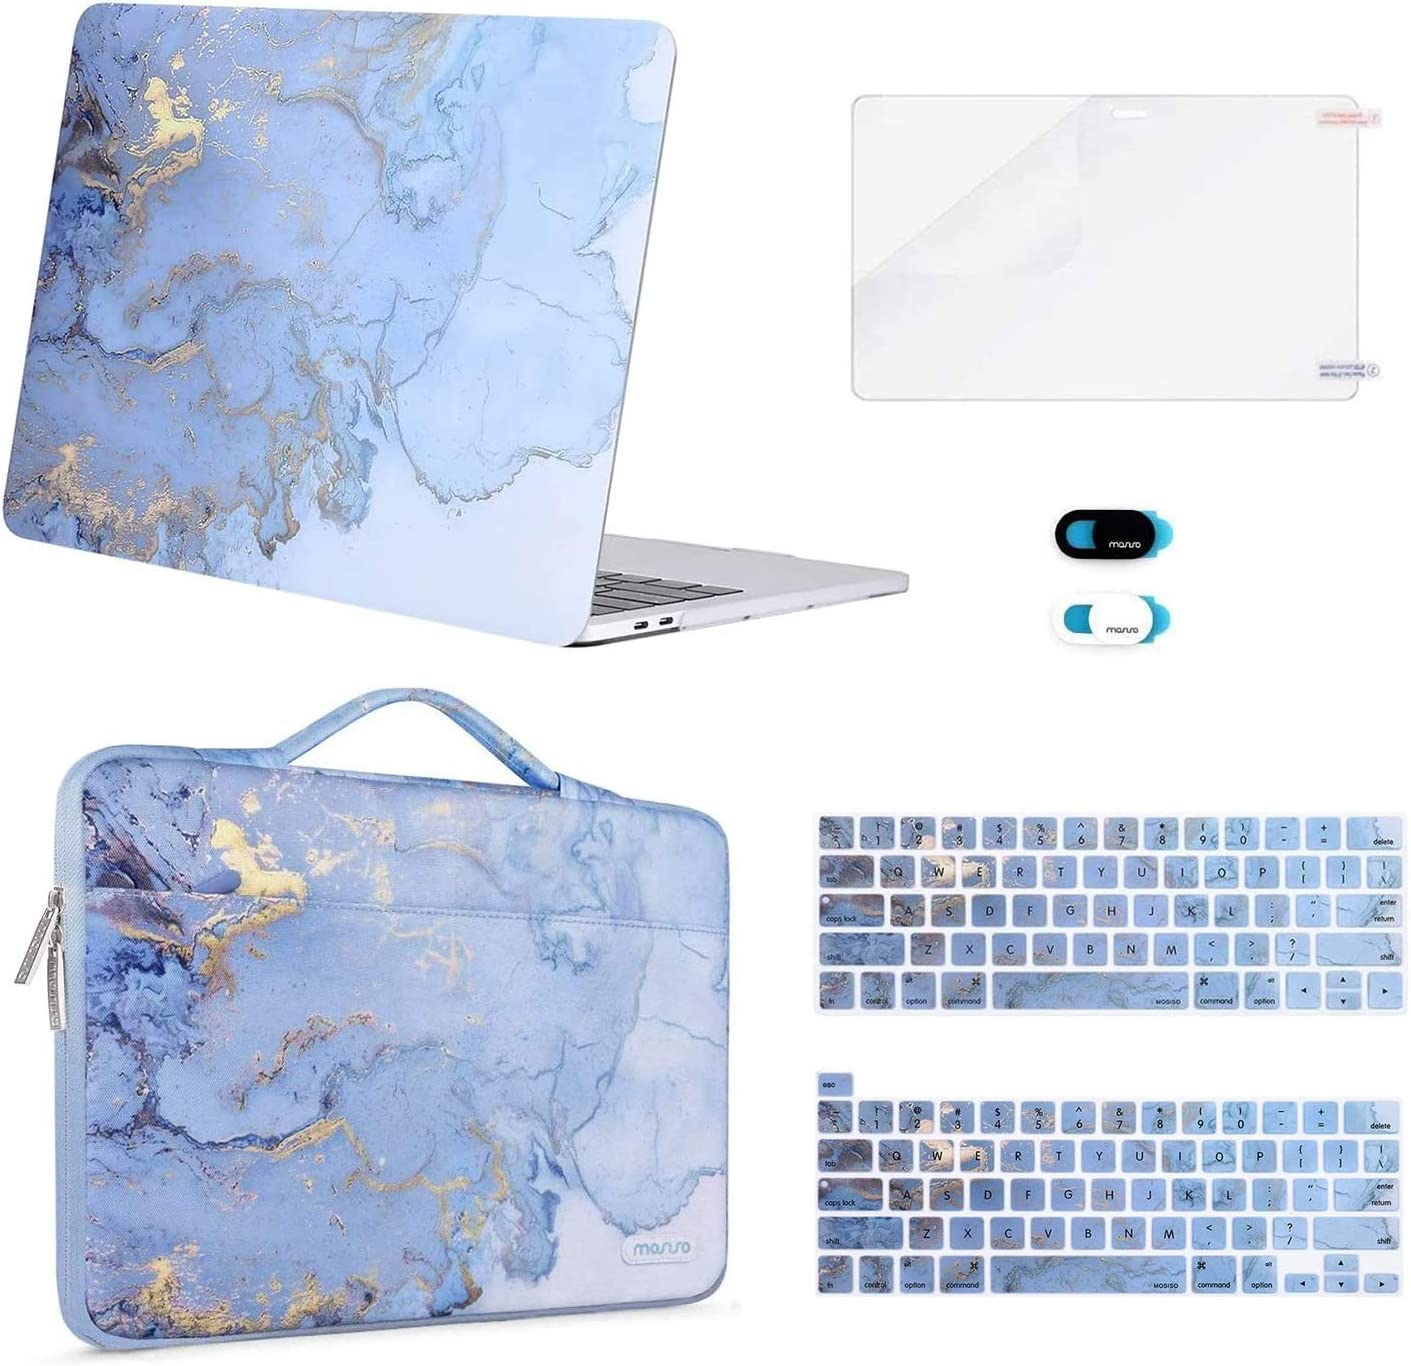 MOSISO OFFicial shop Compatible Nippon regular agency with MacBook Pro 2016-2020 Case A2338 inch 13